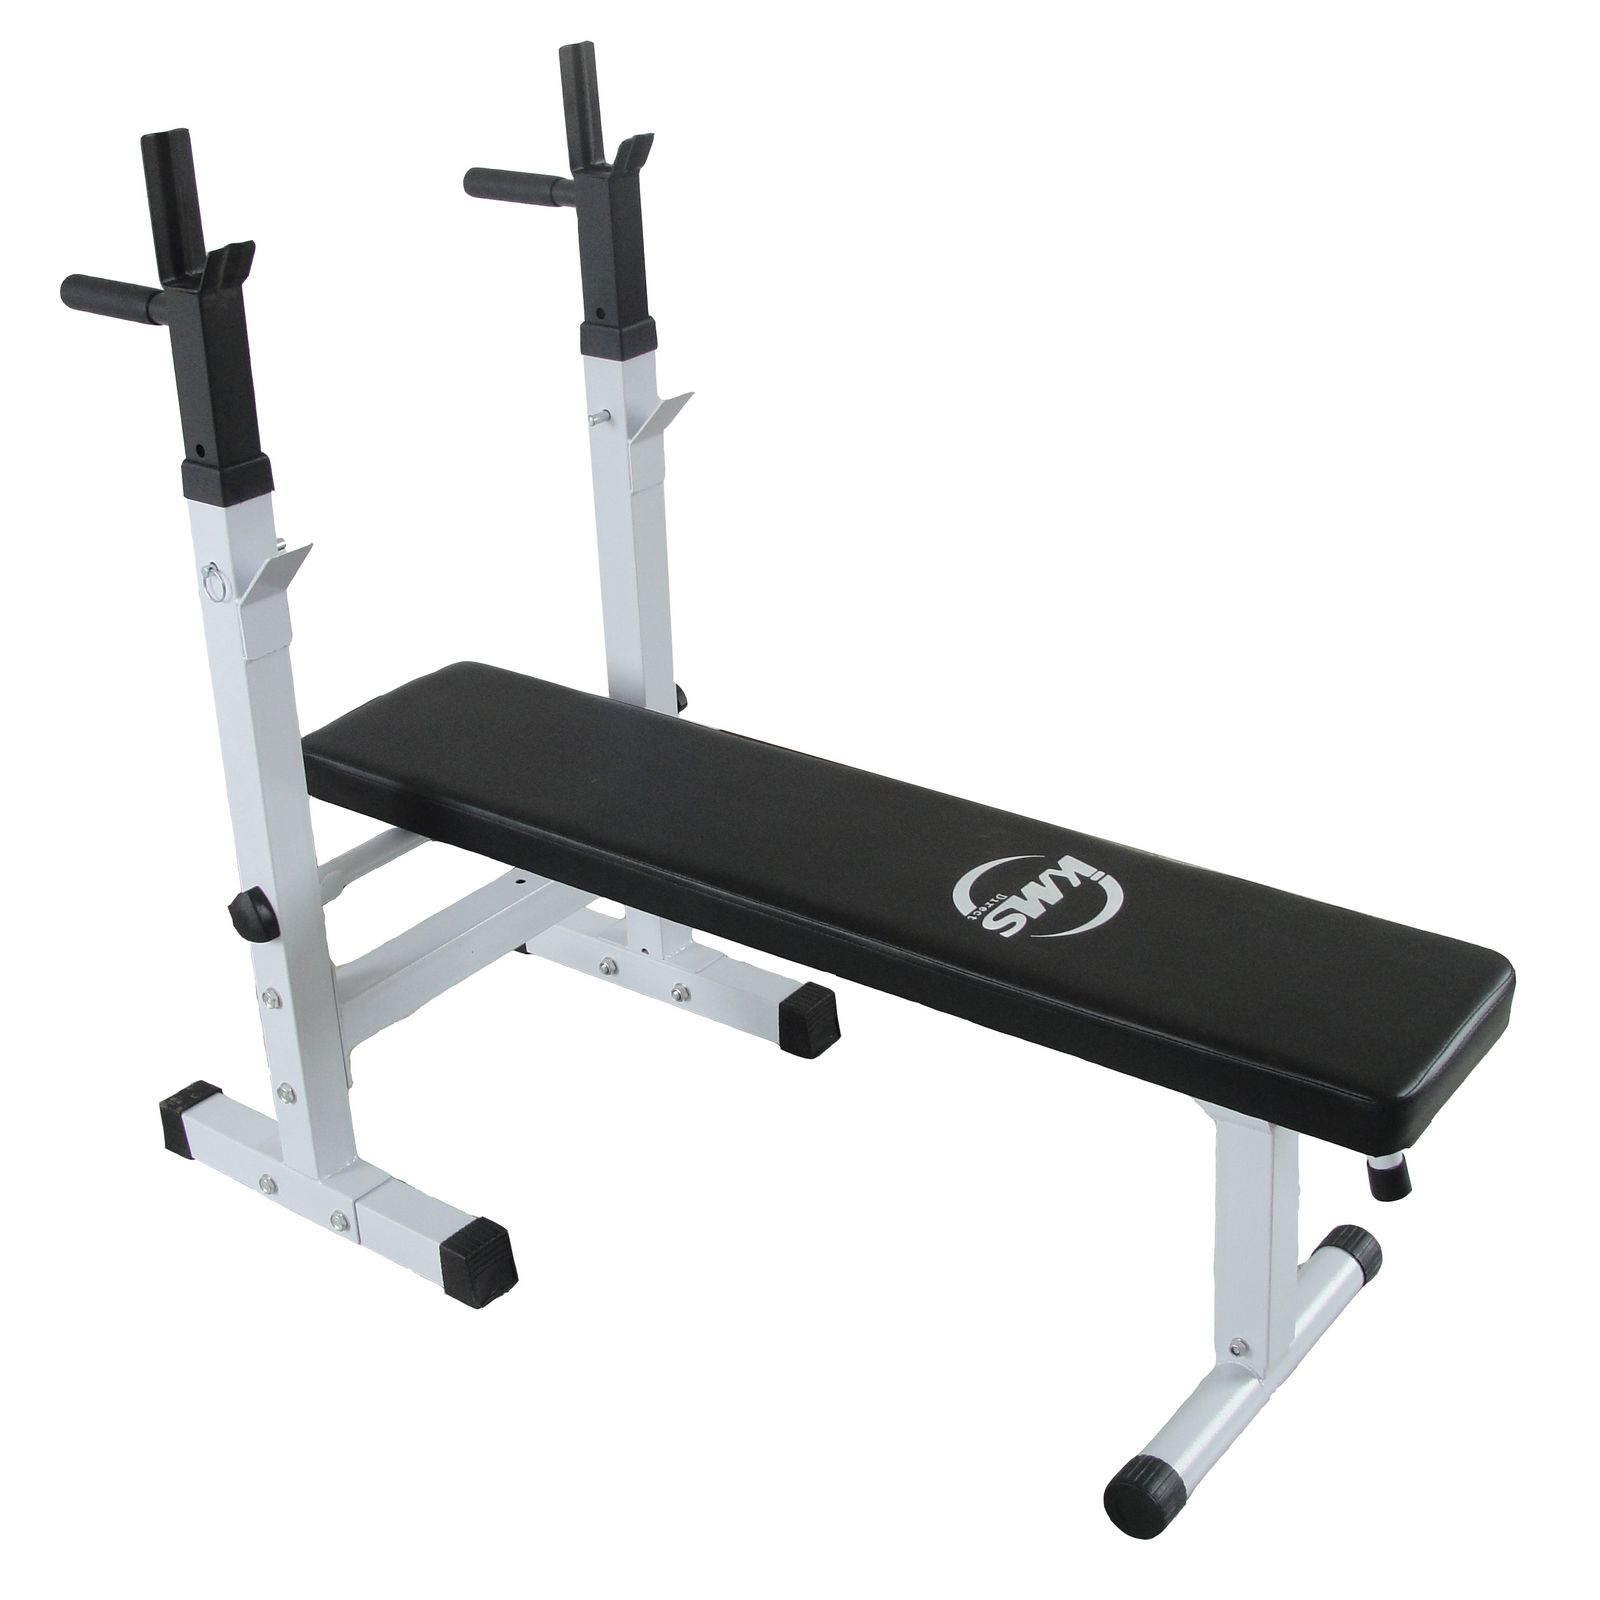 Free Weights On Bench: Heavy Duty Gym Shoulder Chest Press Sit Up Weights Bench